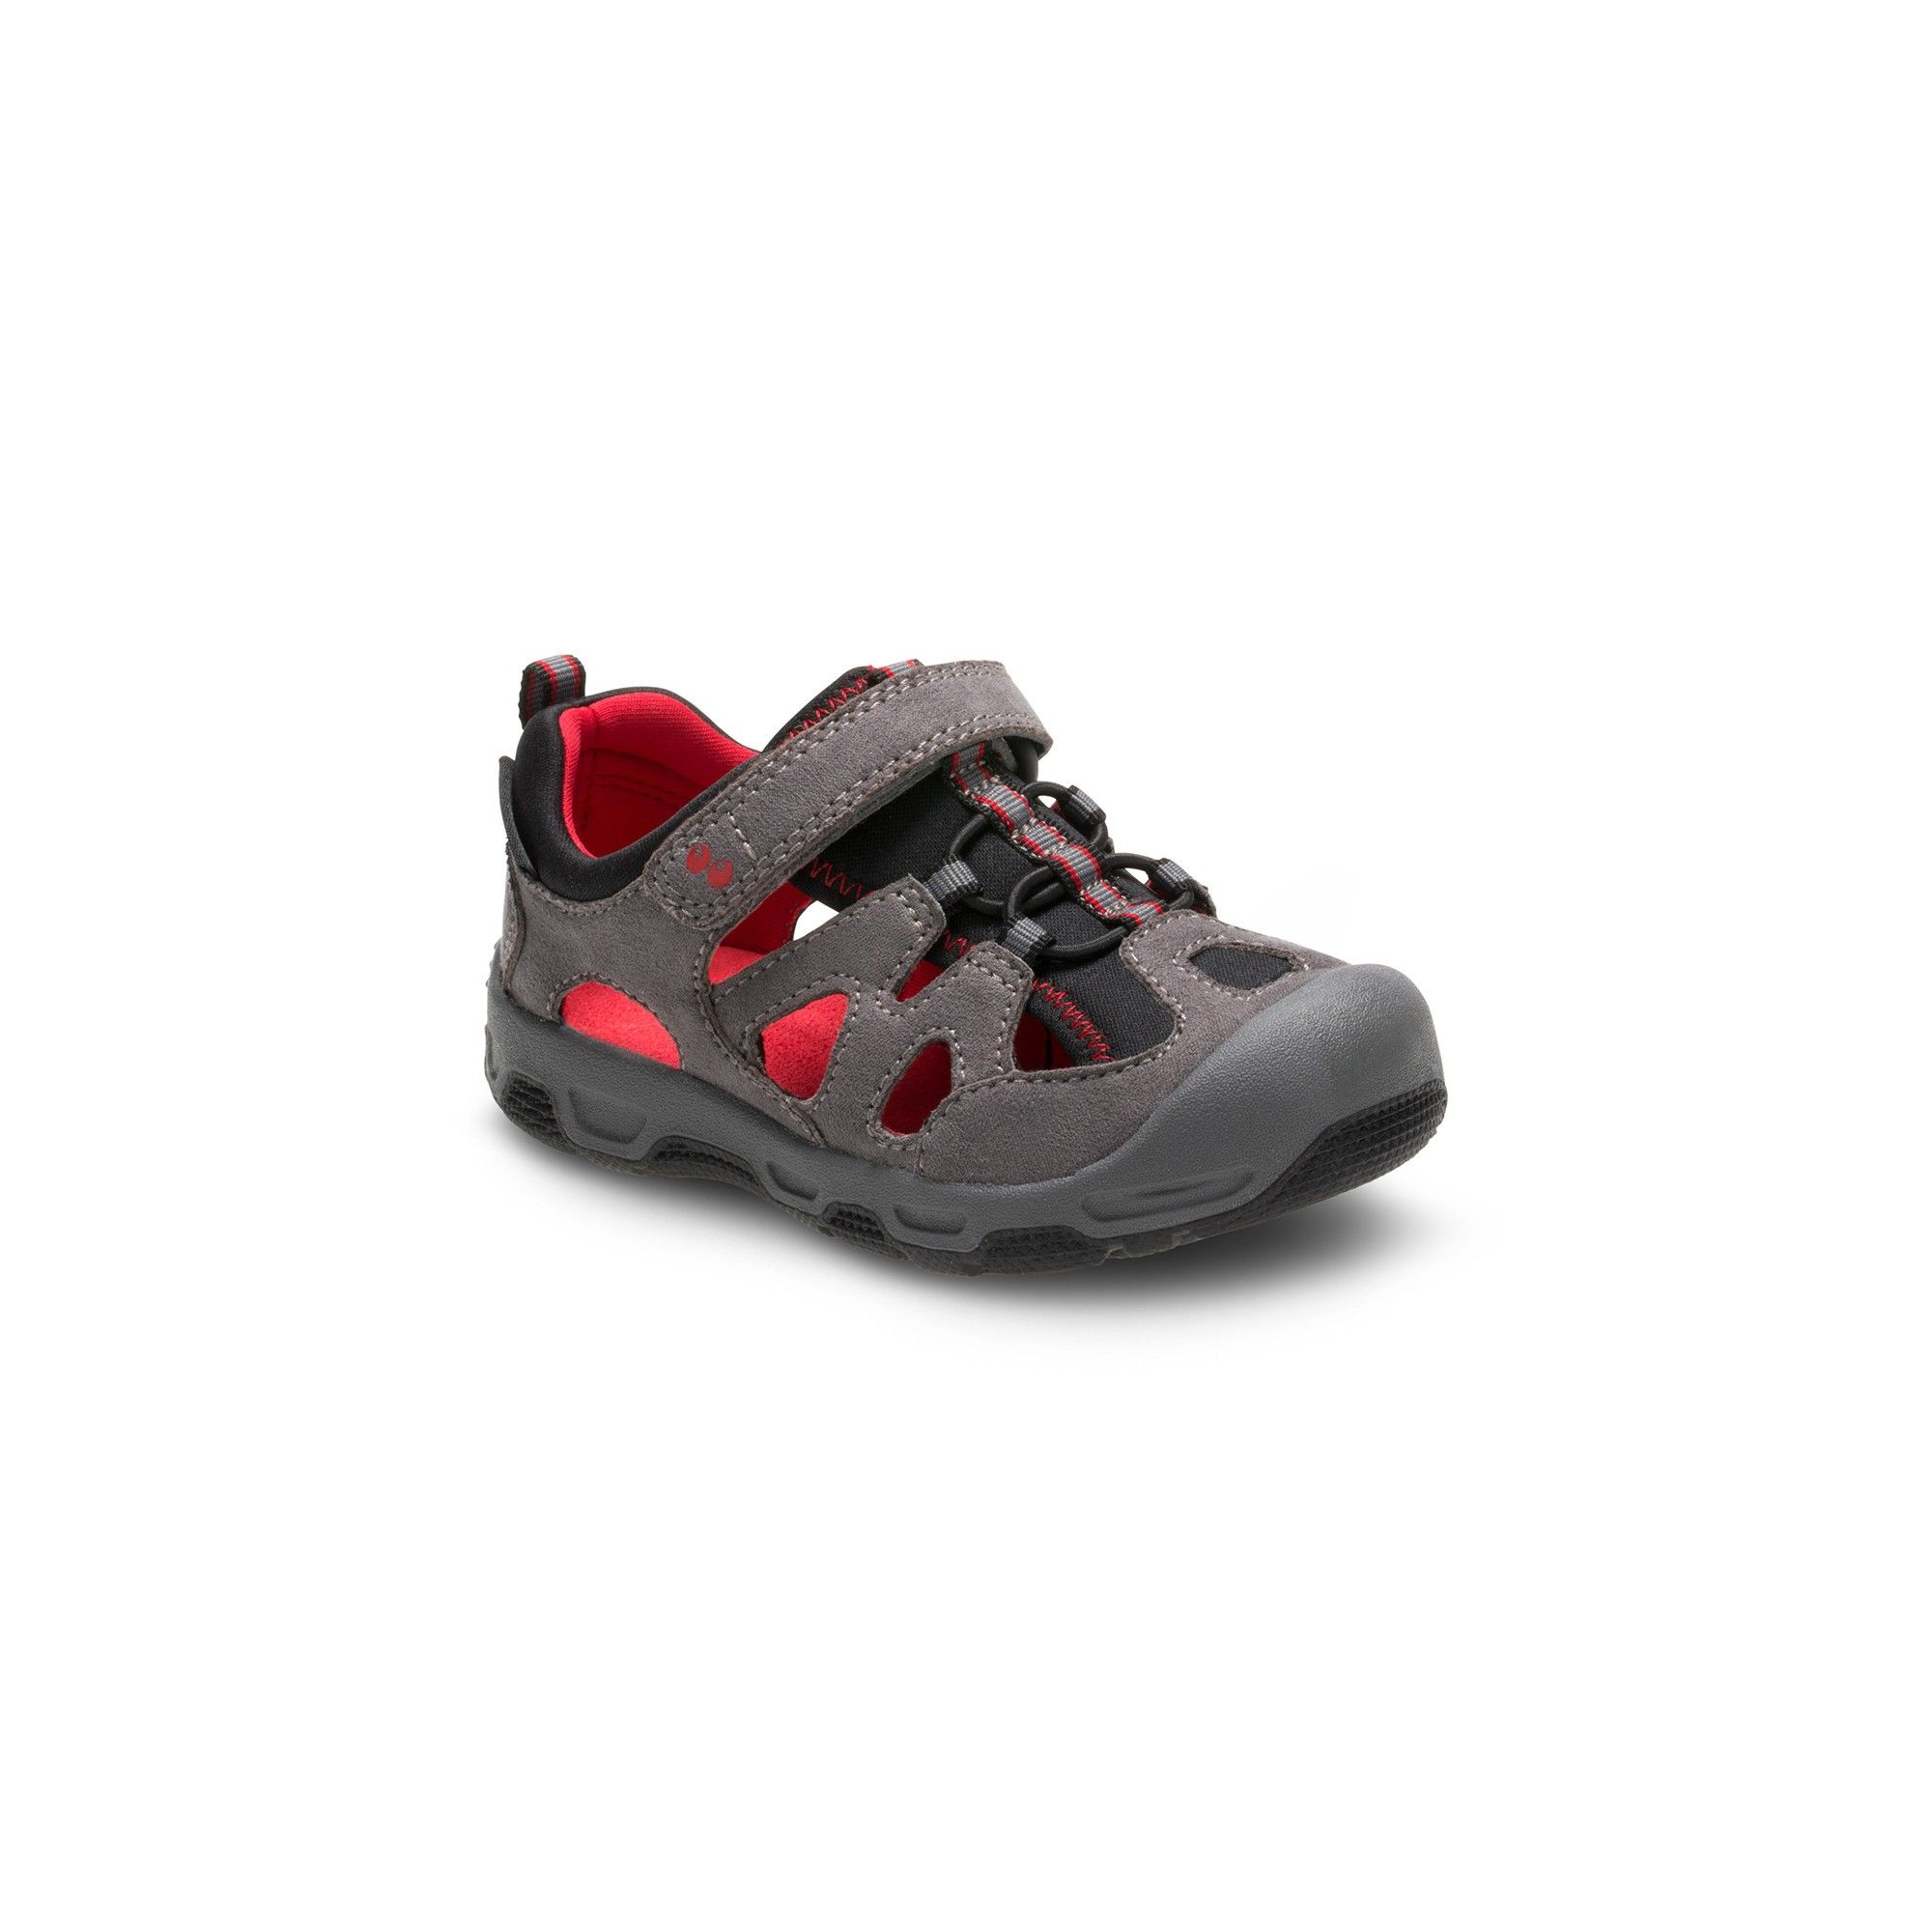 Toddler Boys Surprize by Stride Rite Surprize Deonte Sandals Red